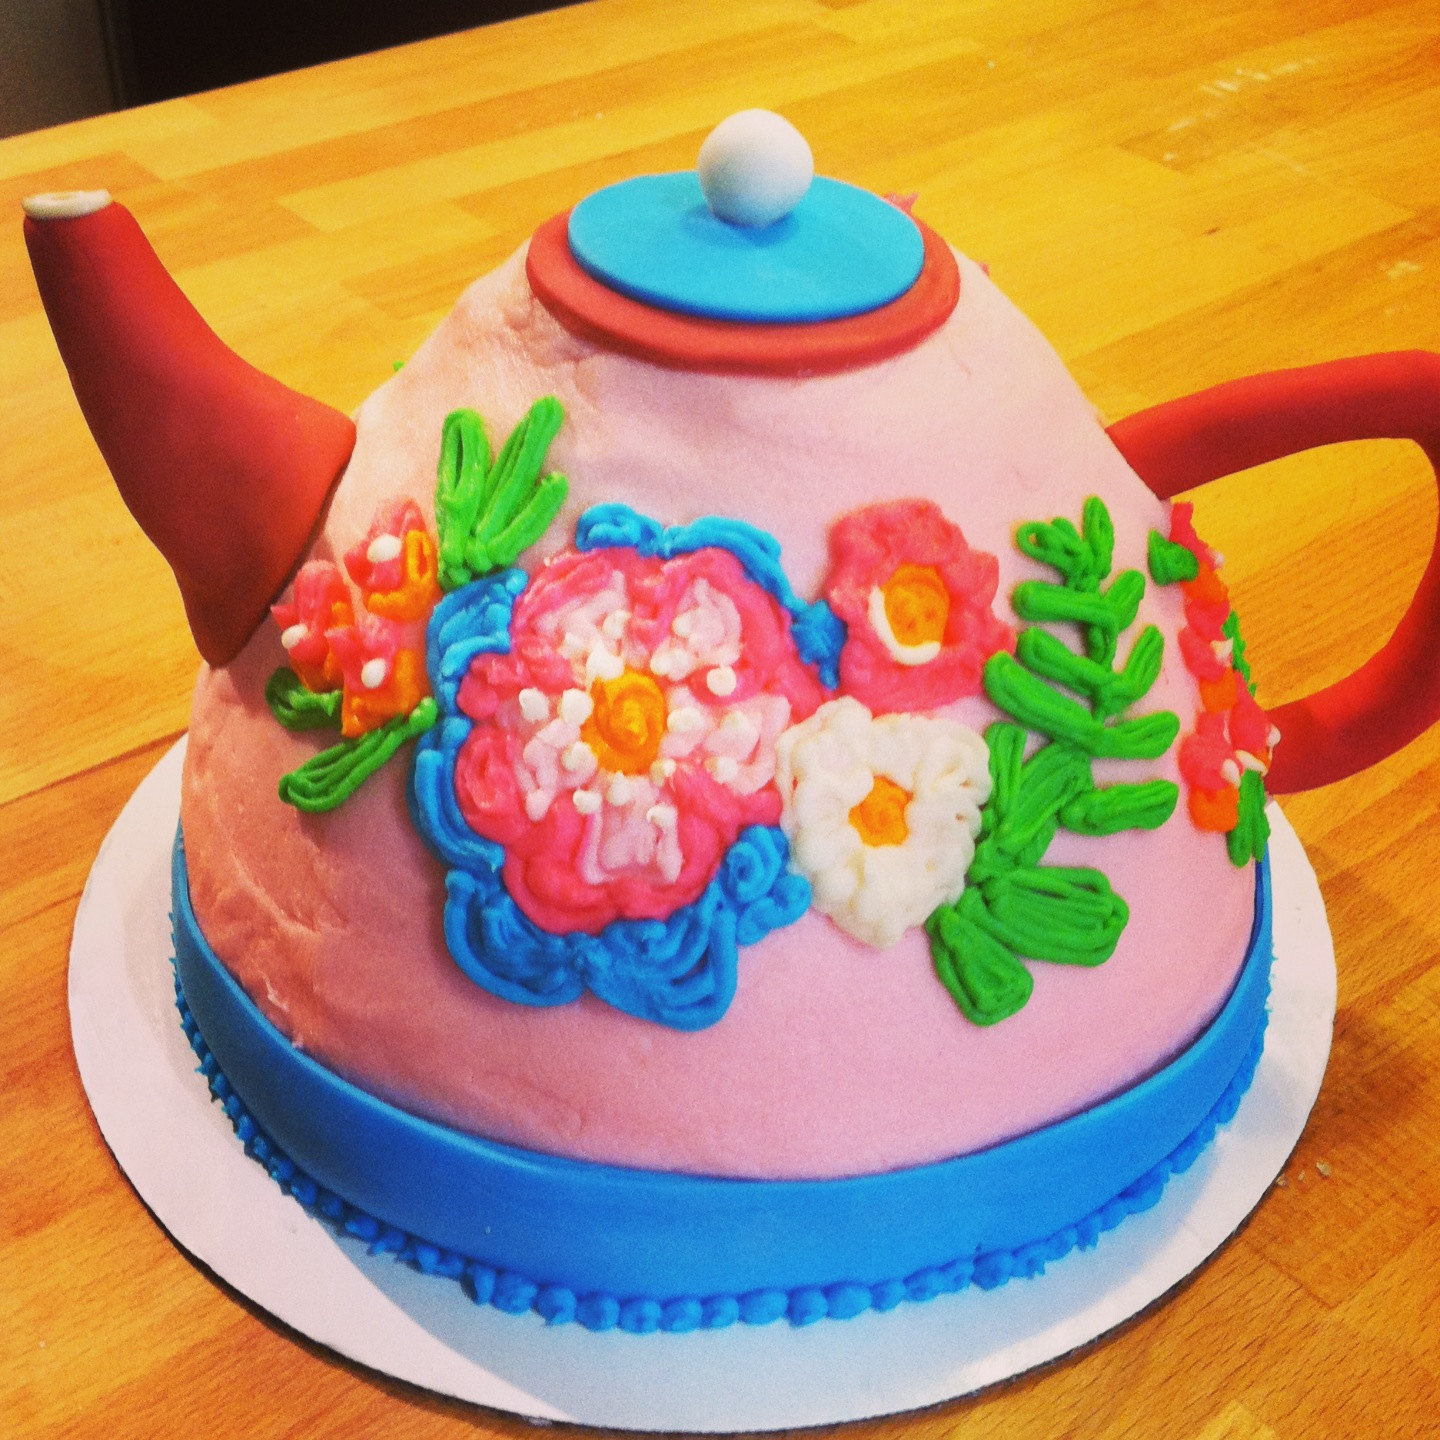 Specialty Cakes Richmond Cake Ideas And Designs